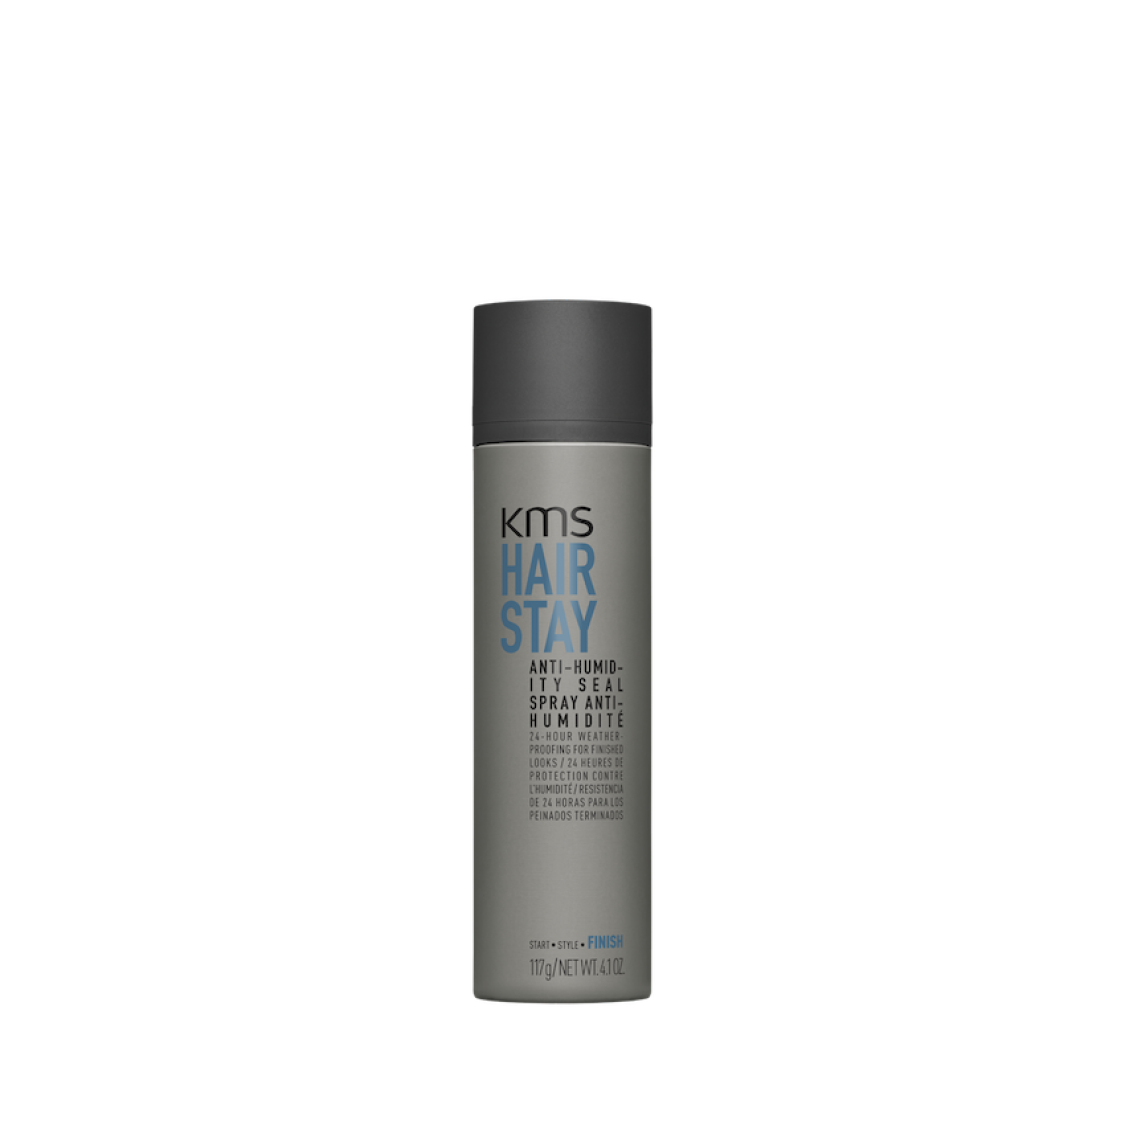 KMS - Hair Stay Anti-Humidity Seal 150ml